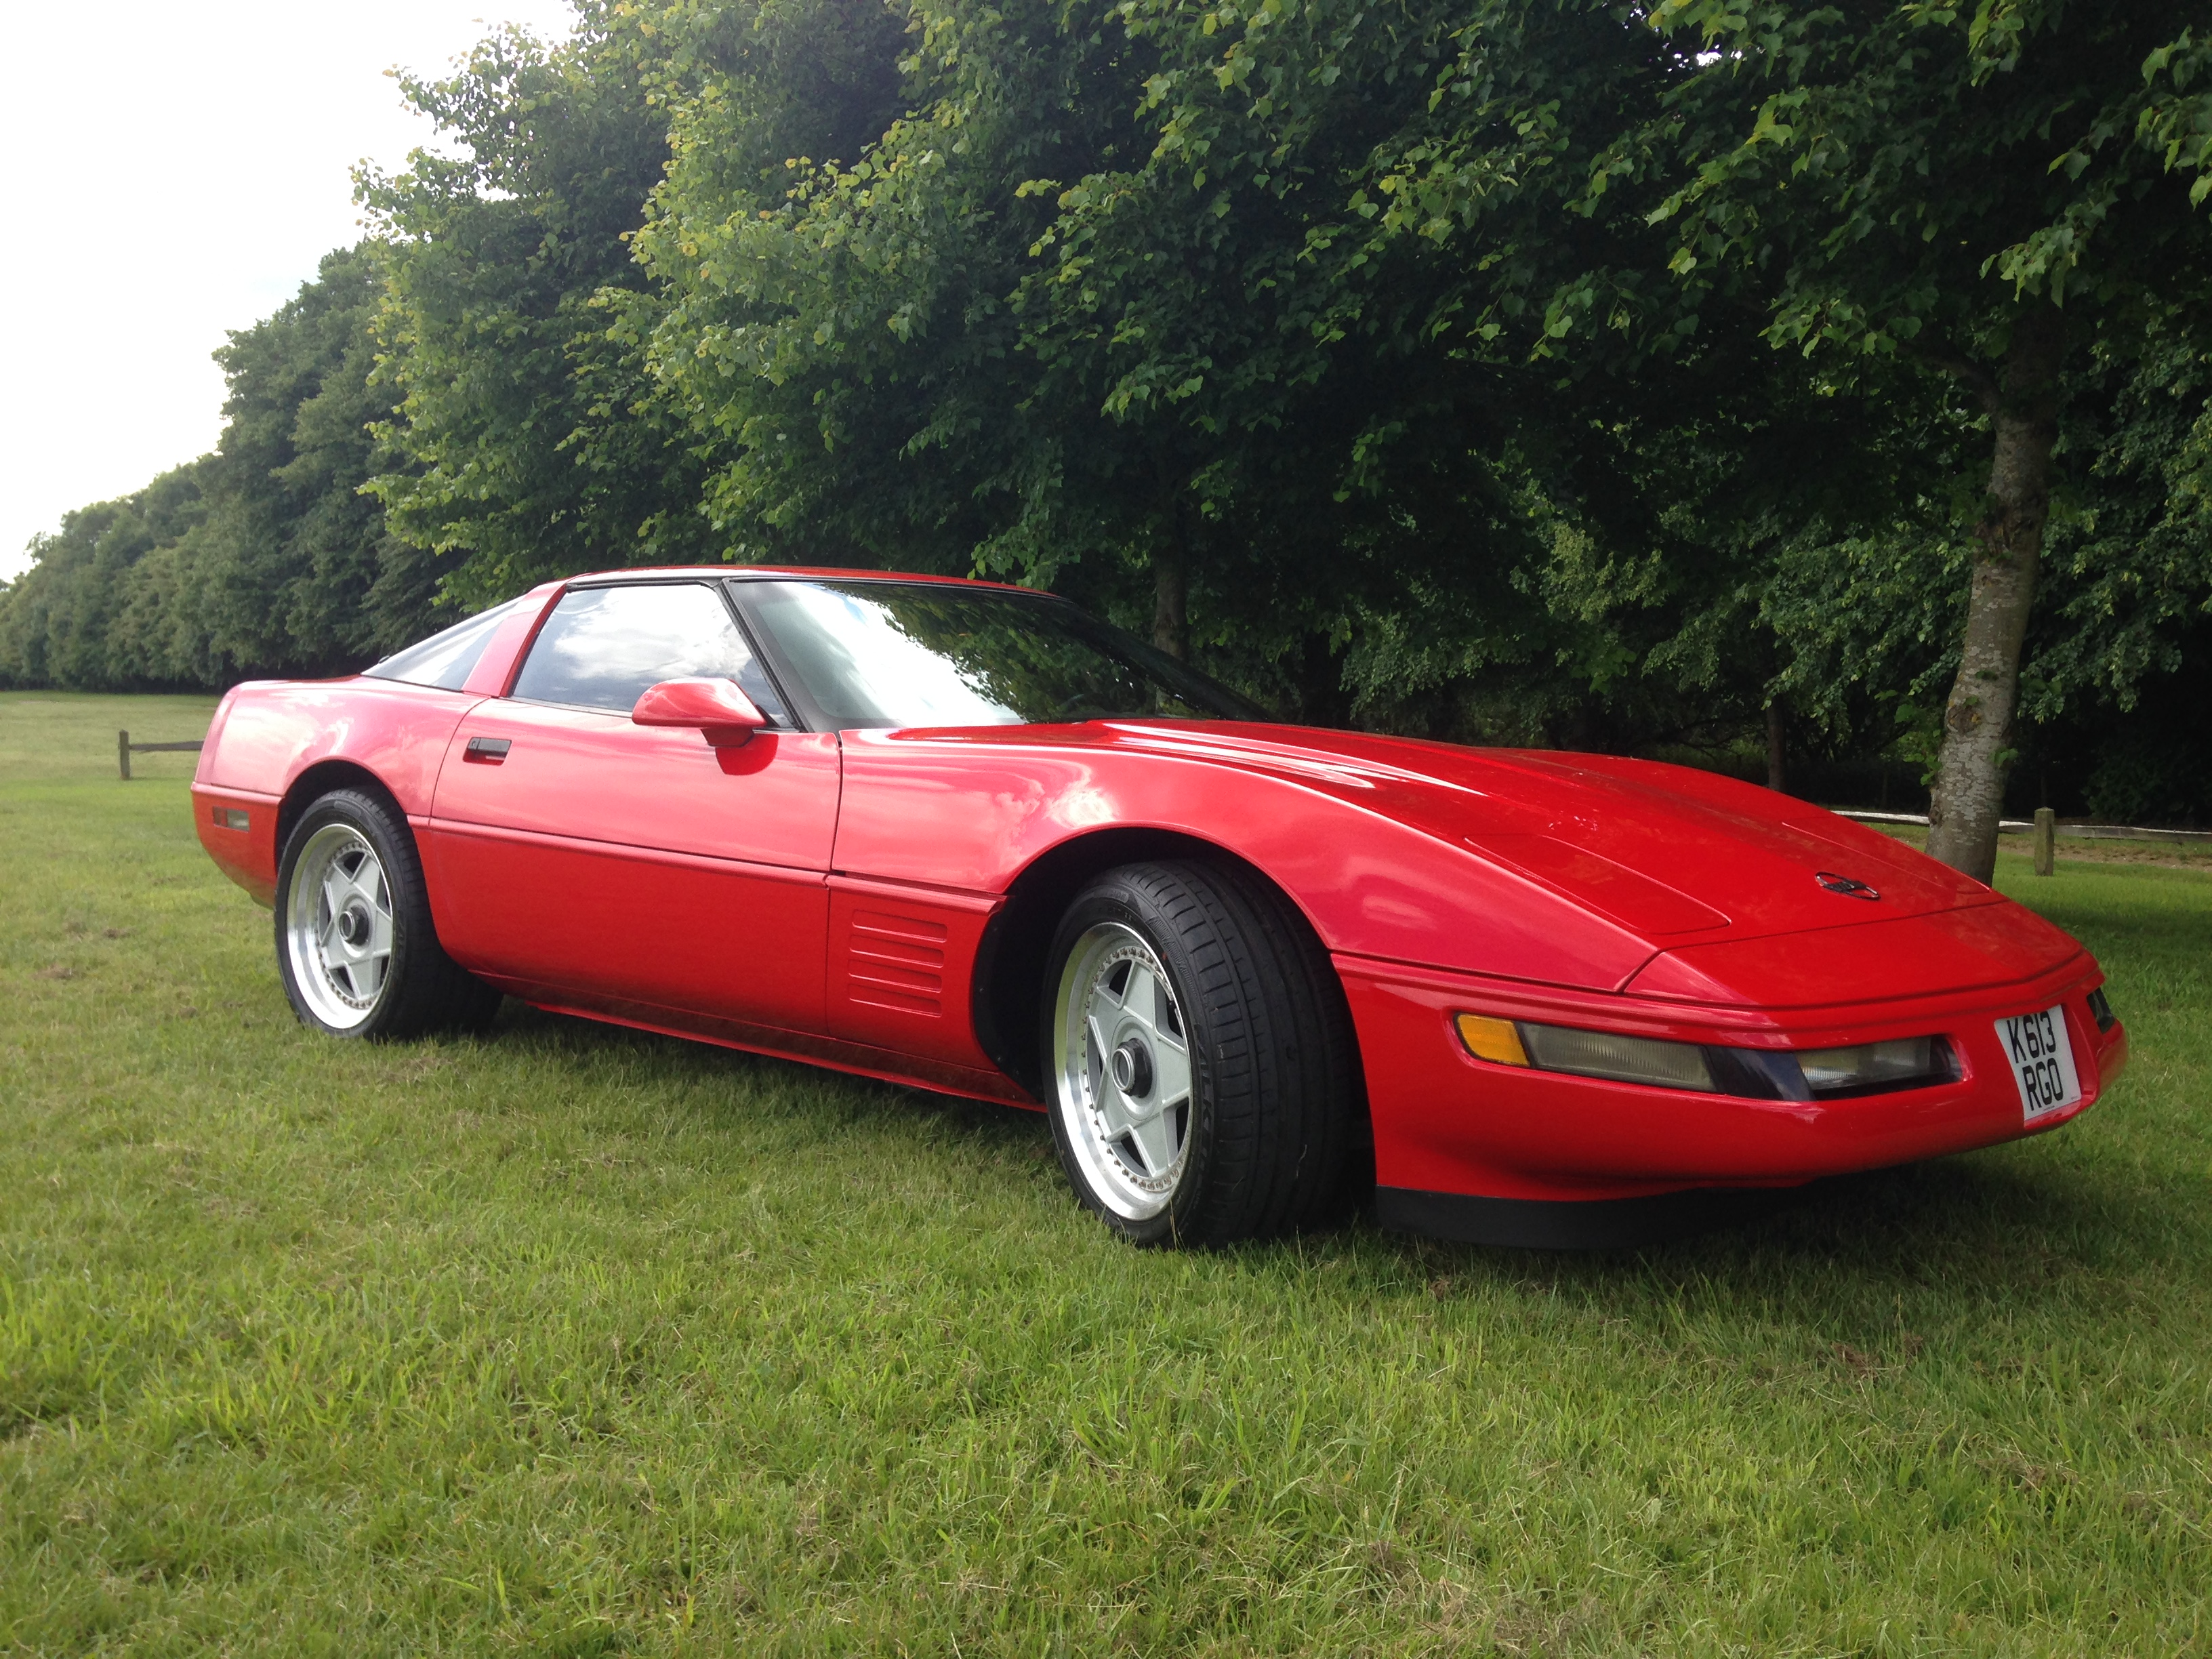 1993 Chevrolet Corvette Stingray C4 - Country Classic Cars